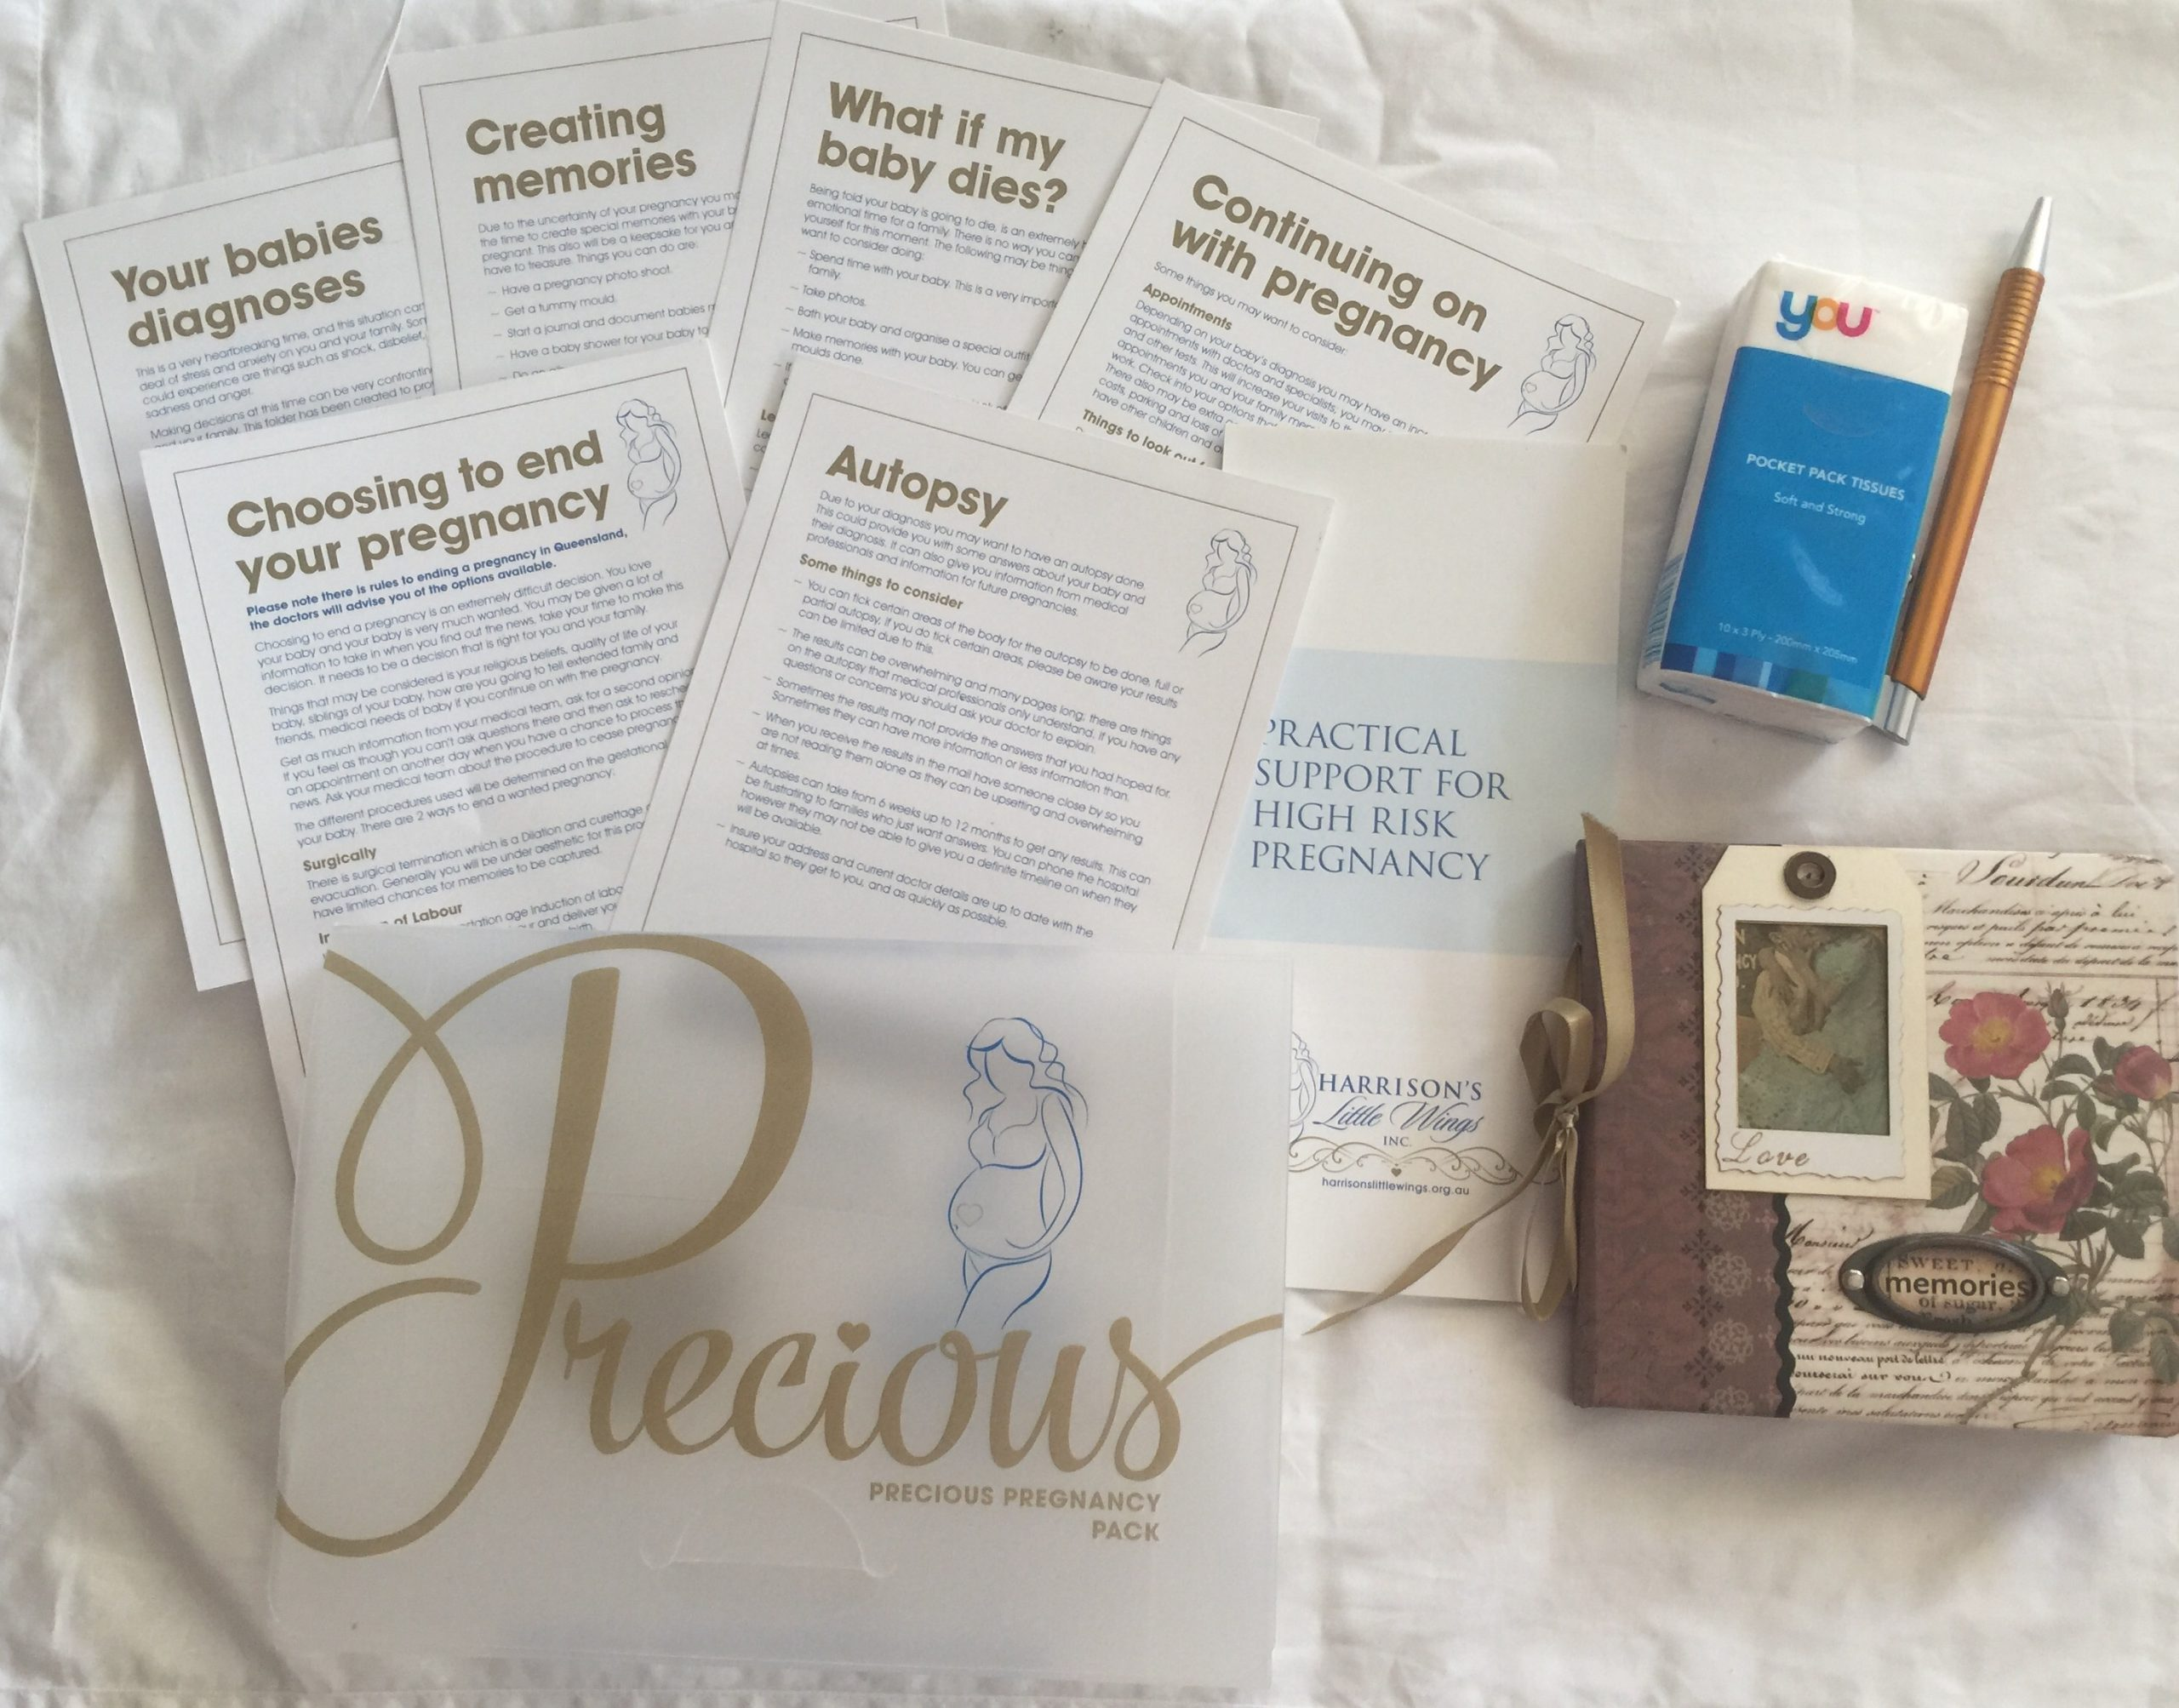 Precious Pregnancy Pack by Harrisons LIttle Wings for High Risk Pregnancy Support